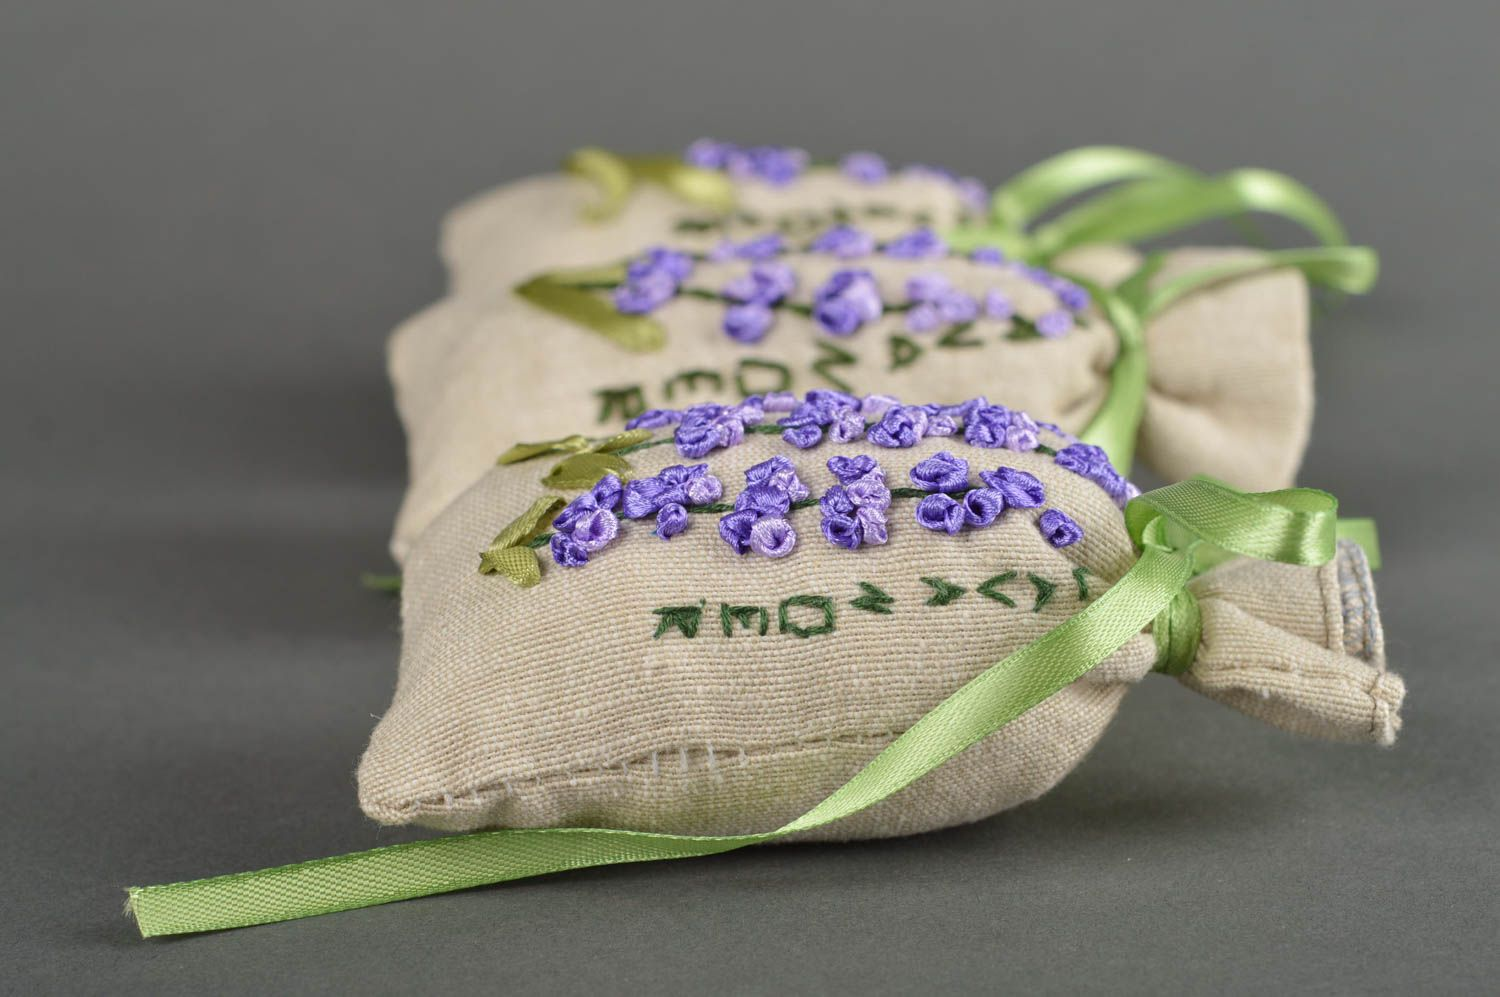 Handmade bags for aromatic sachets bags for gifts decorative use only photo 2